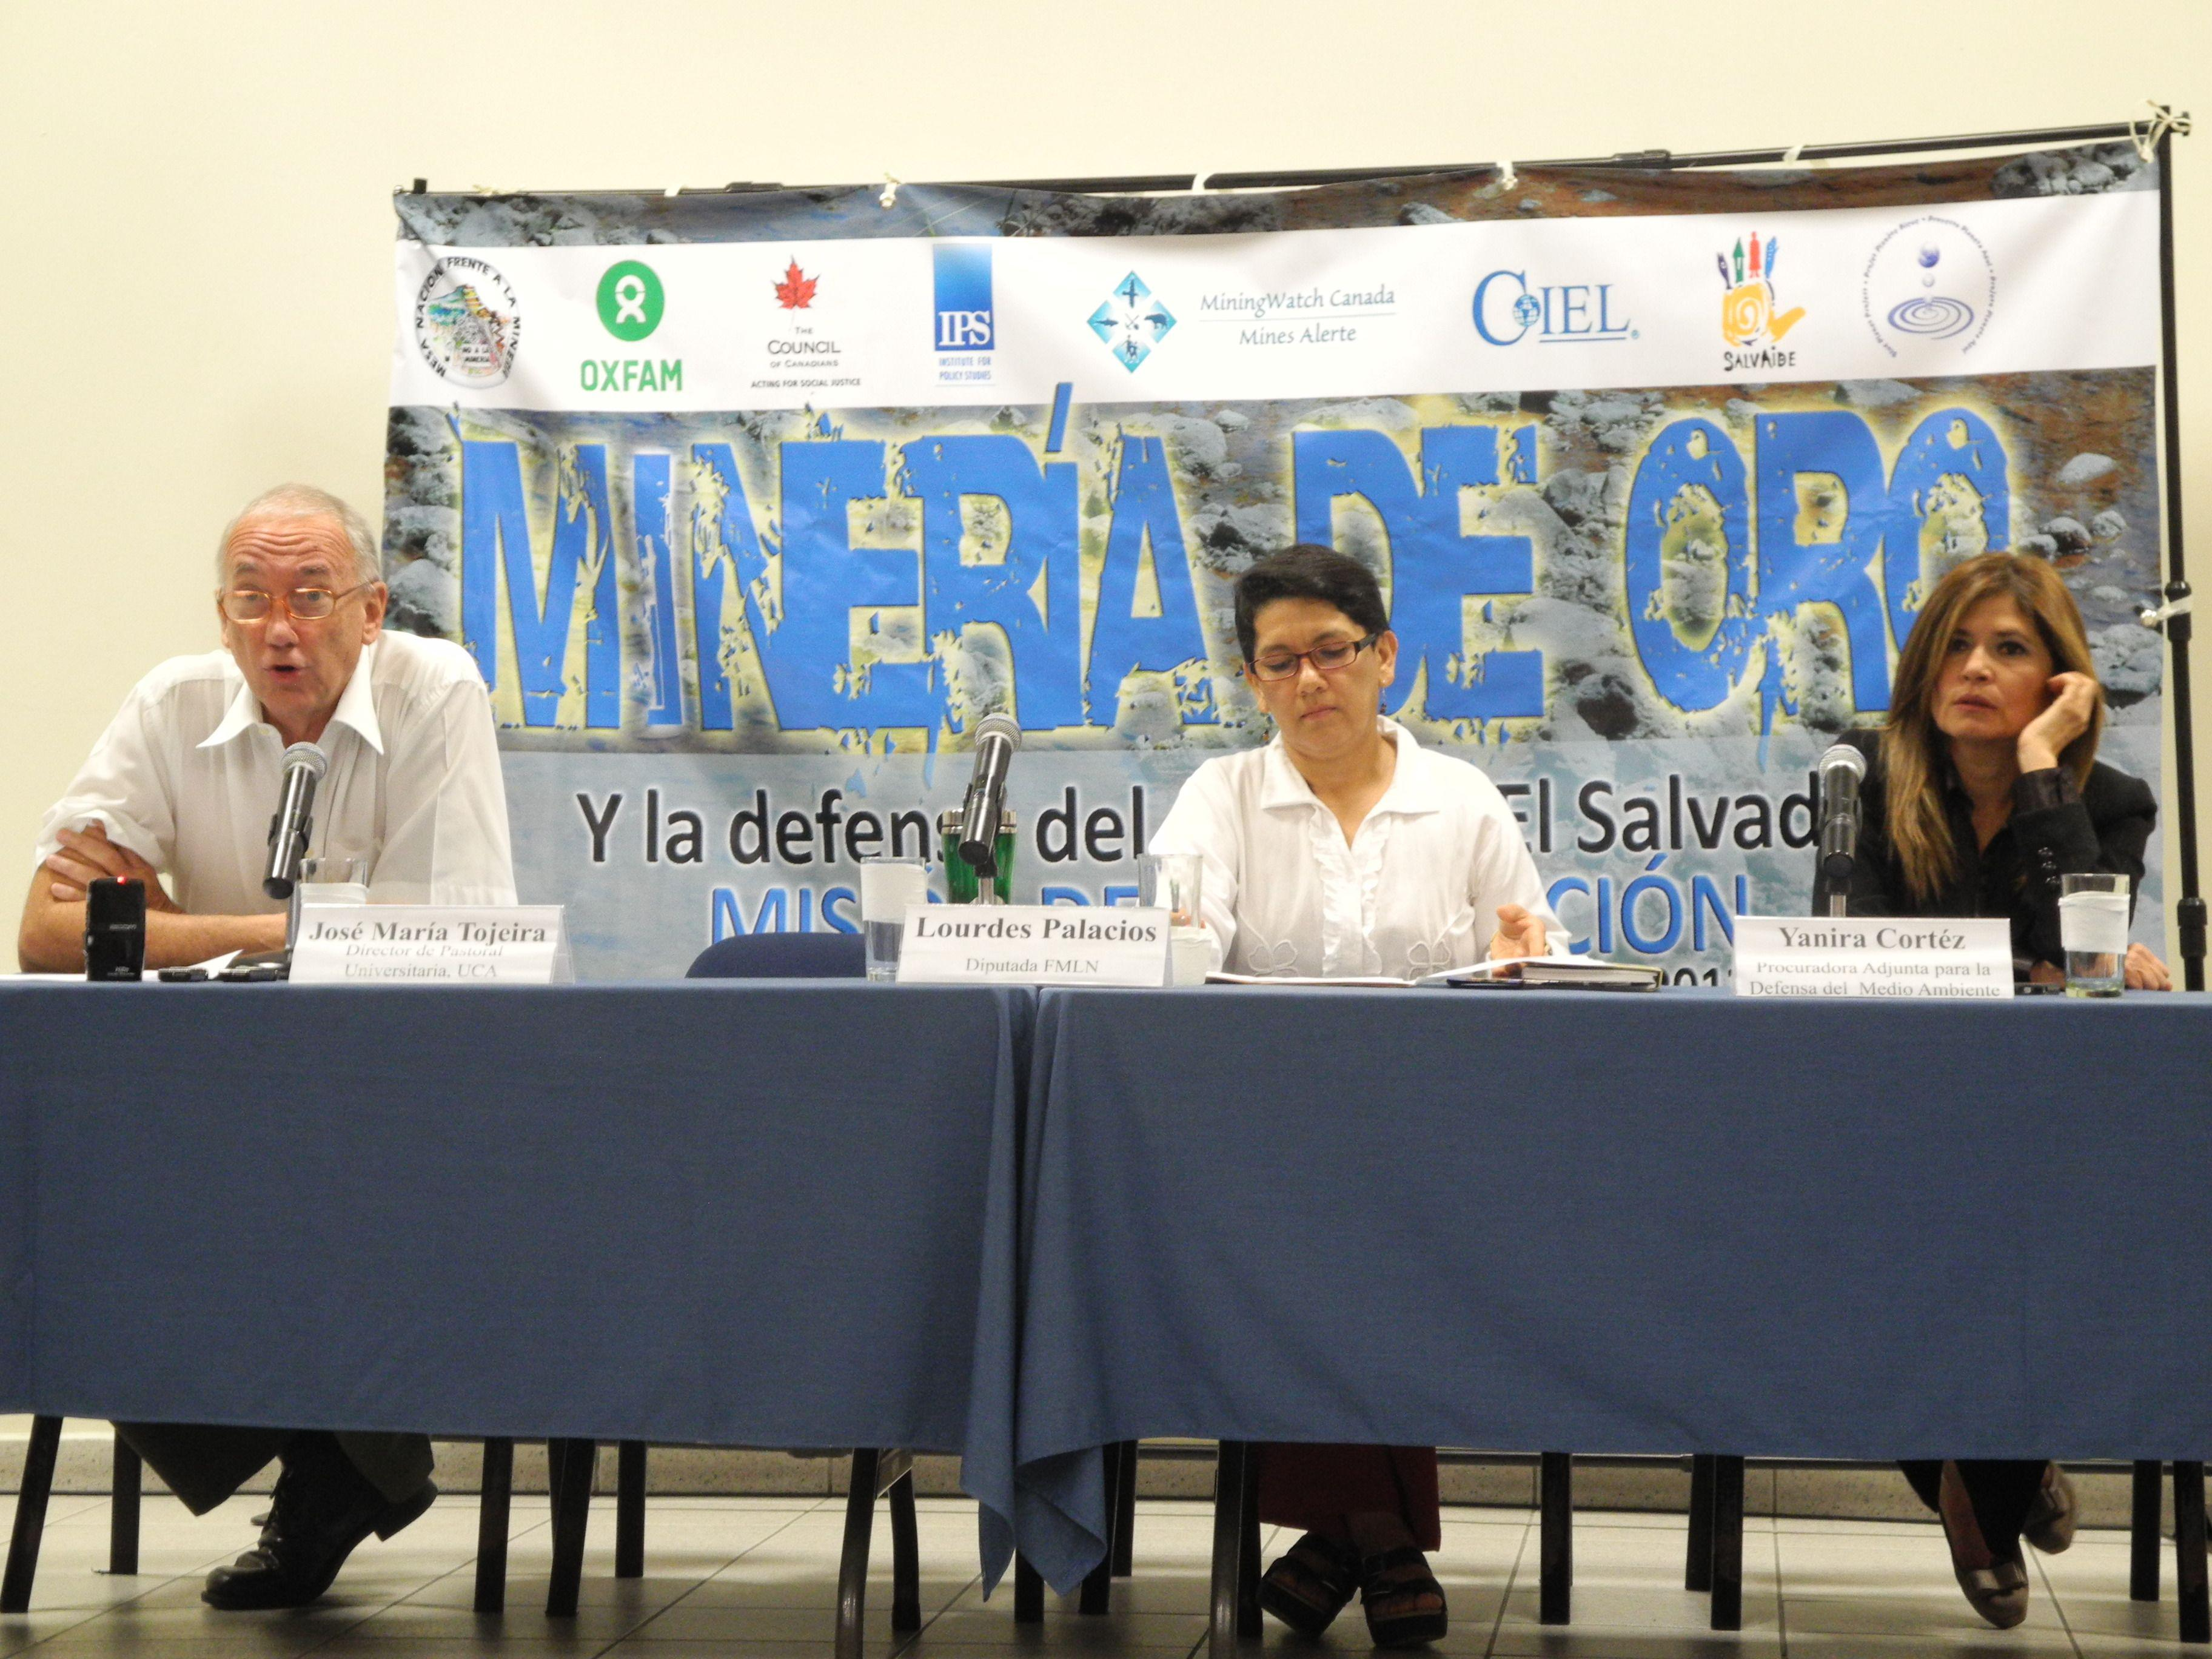 International Delegation to El Salvador, May 10-13, 2013